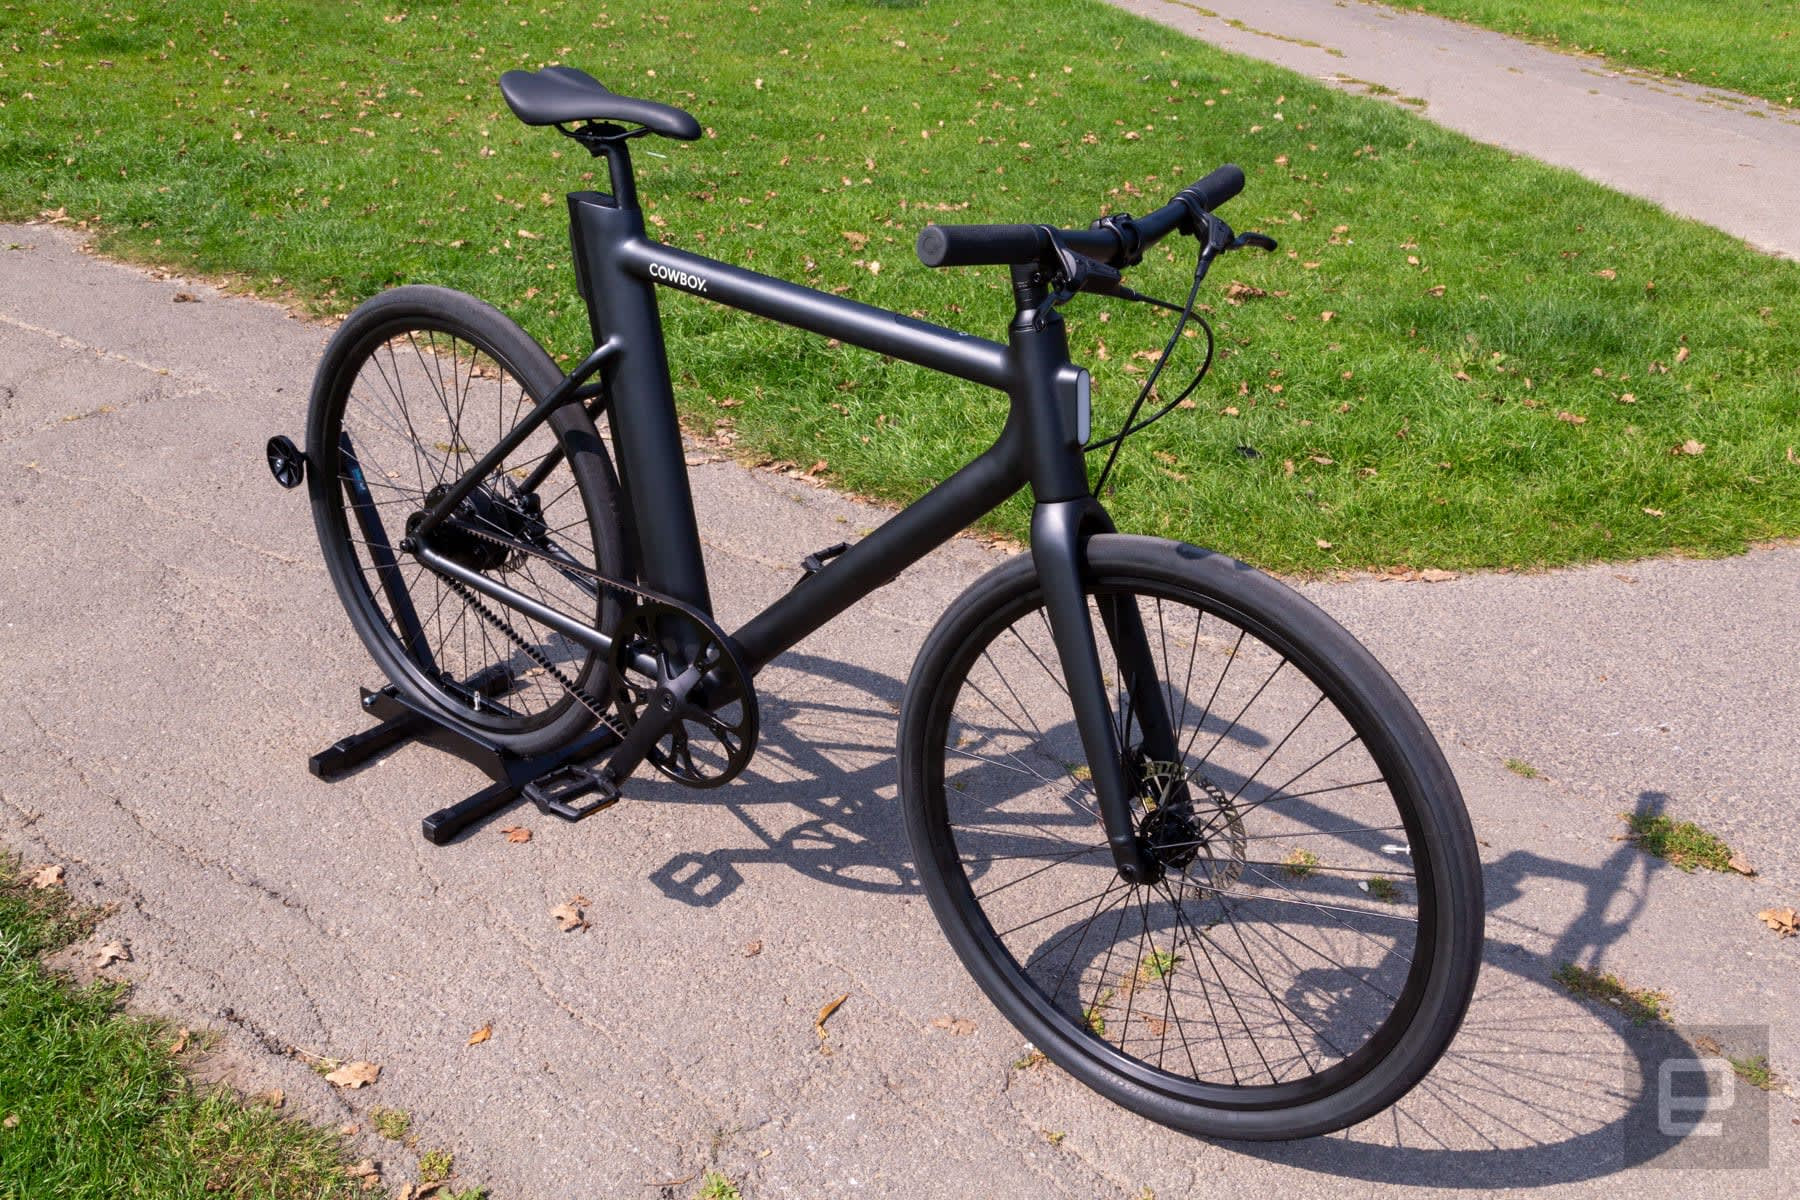 Cowboy's first e-bike solves the removable battery problem